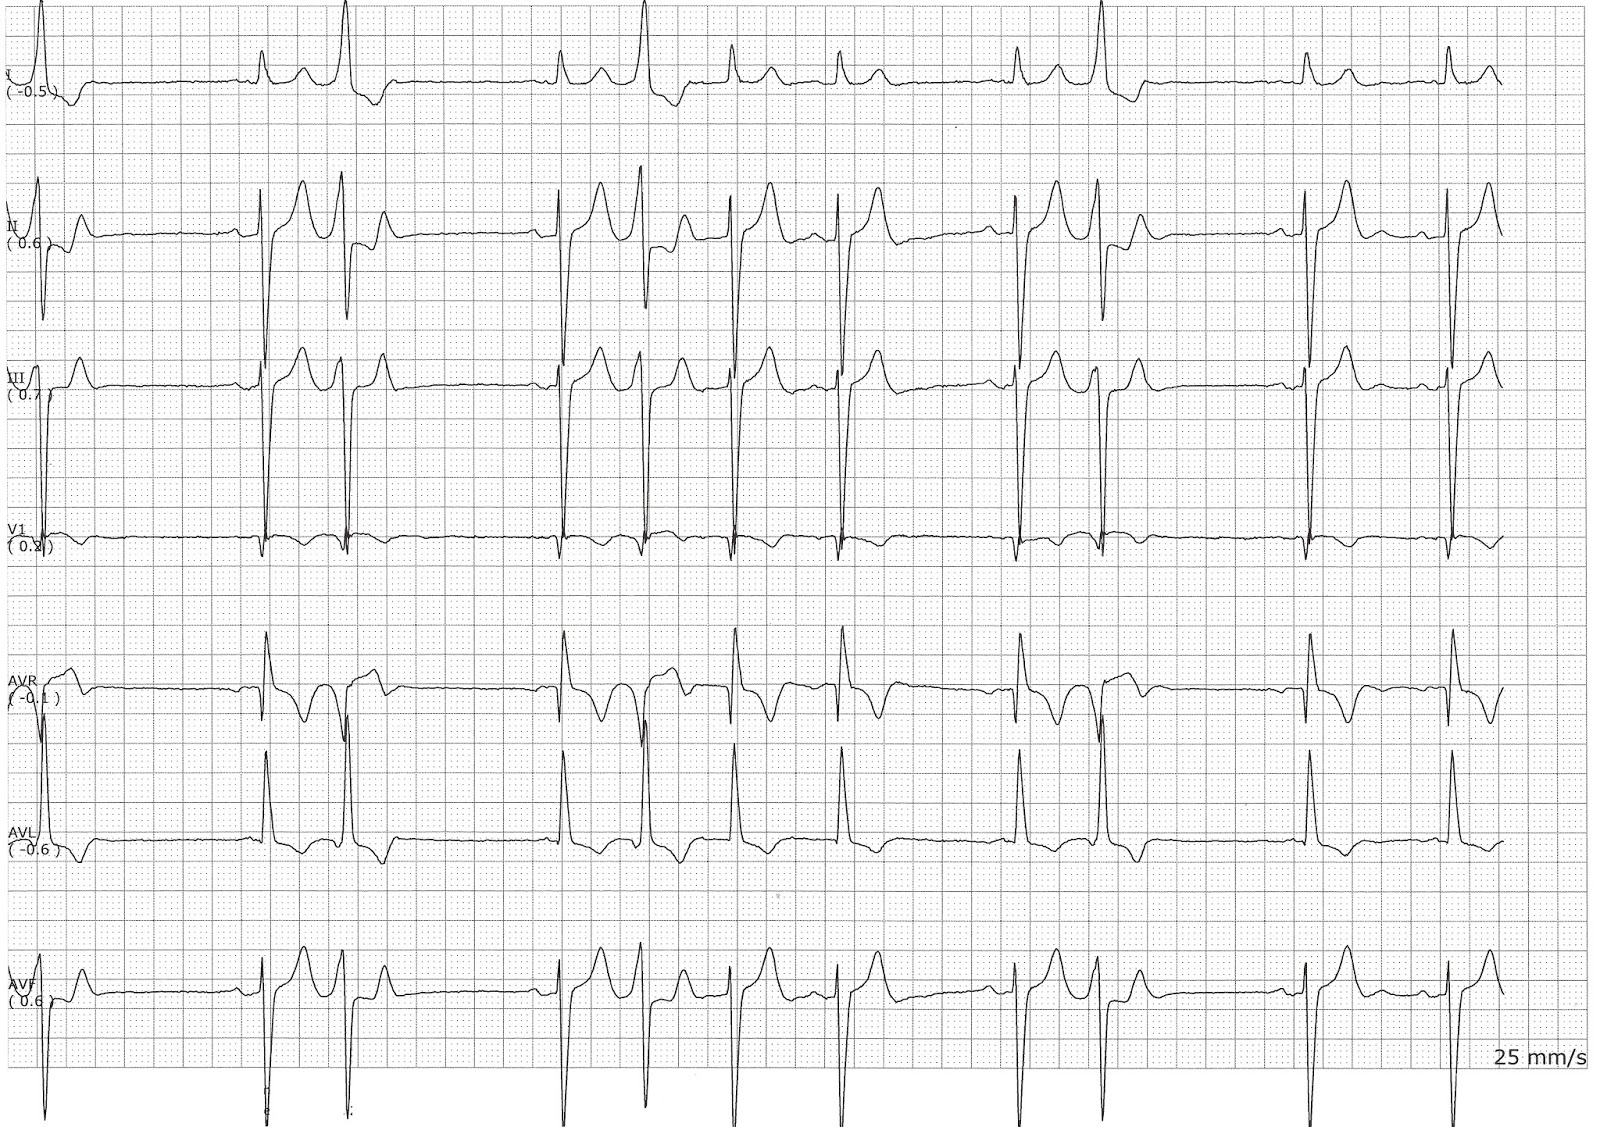 ekg practice questions Nclex ekg practice questions 1 2 3 related searches for ekg practice for nclex ekg strips for the nclex & beginners ekg practice for nclex - bing.